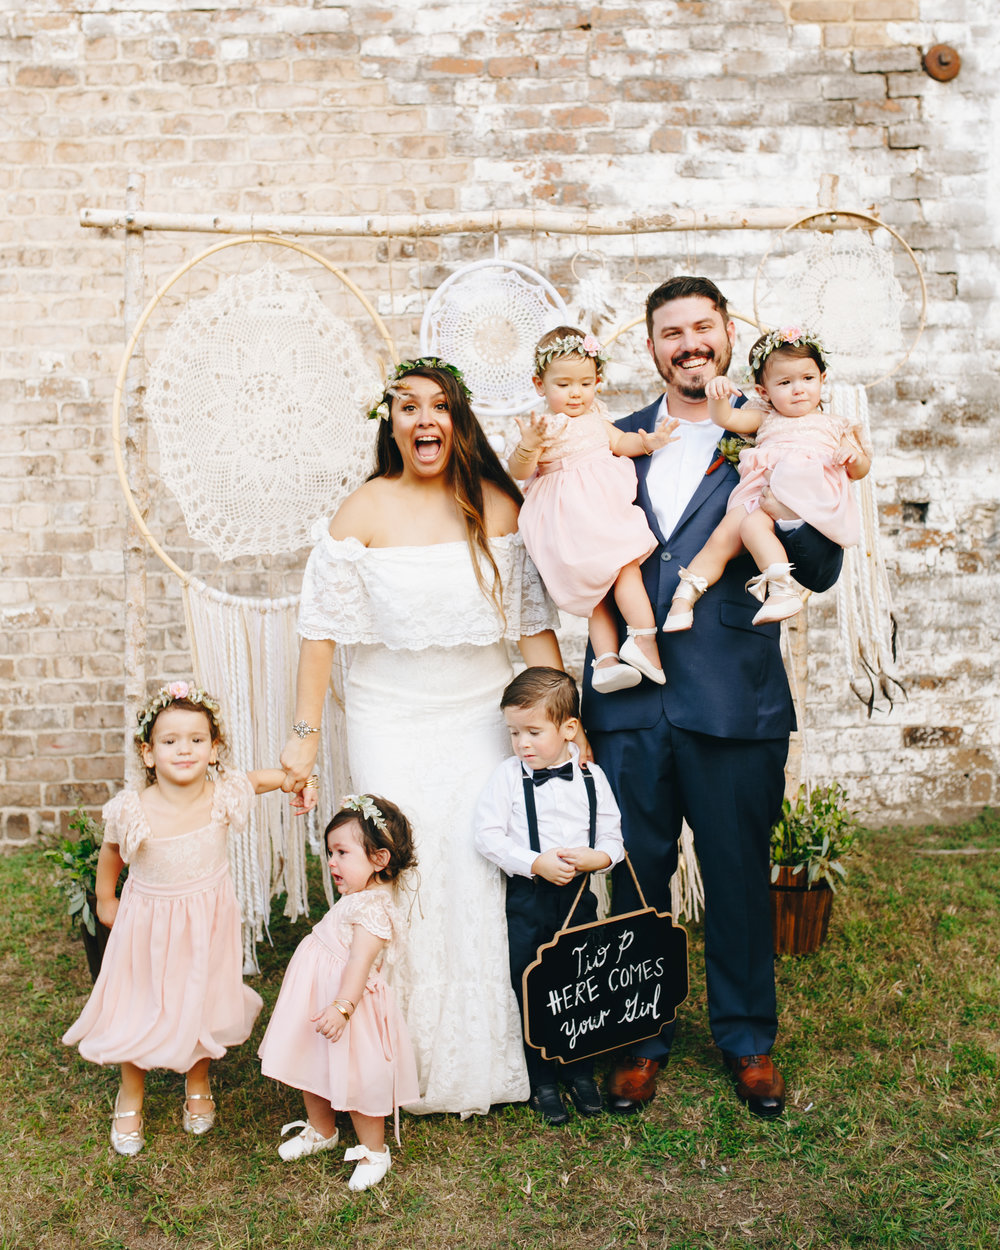 darling-juliet-photography-ivory-and-beau-bridal-boutique-savannah-wedding-dresses-savannah-bridal-gowns-daughters-of-simone-winnie-savannah-florist-boho-wedding-savannah-boho-wedding-roundhouse-railroad-musuem-wedding-28.jpg